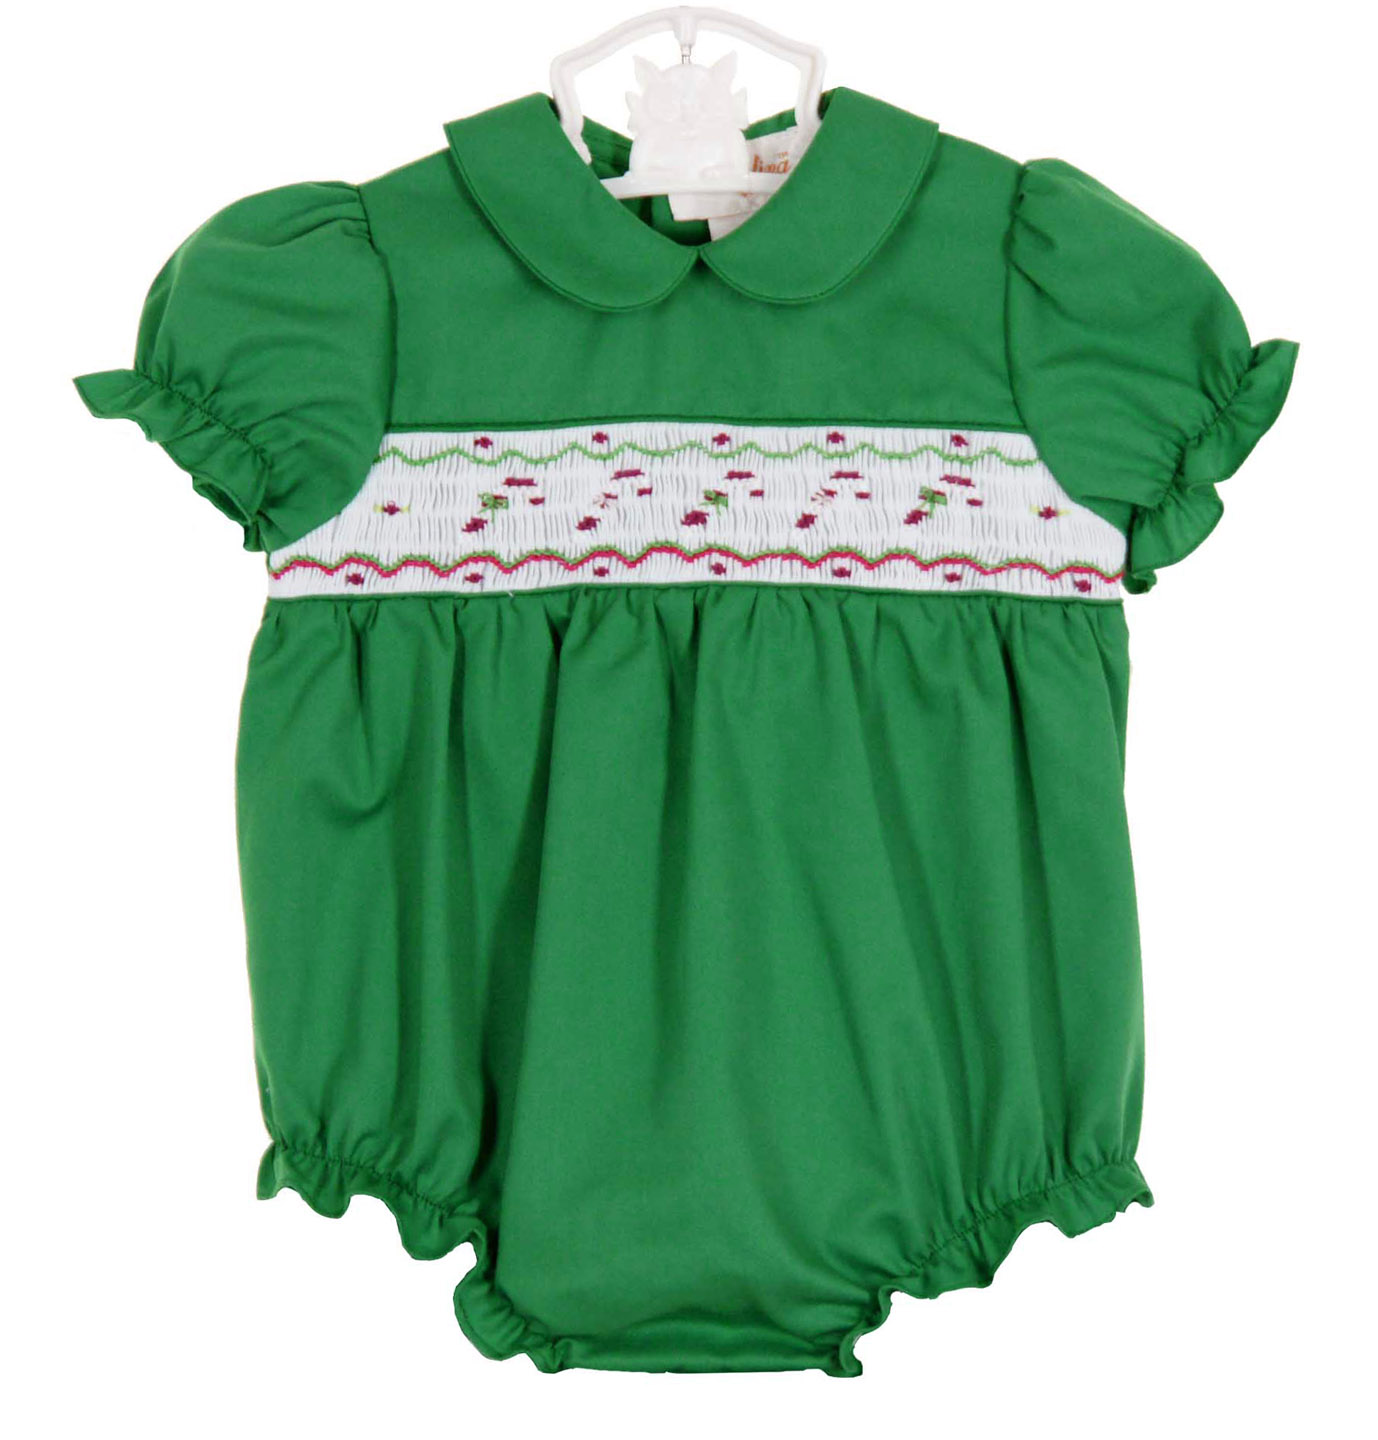 Rosalina Green Bishop Smocked Bubble With Candy Cane